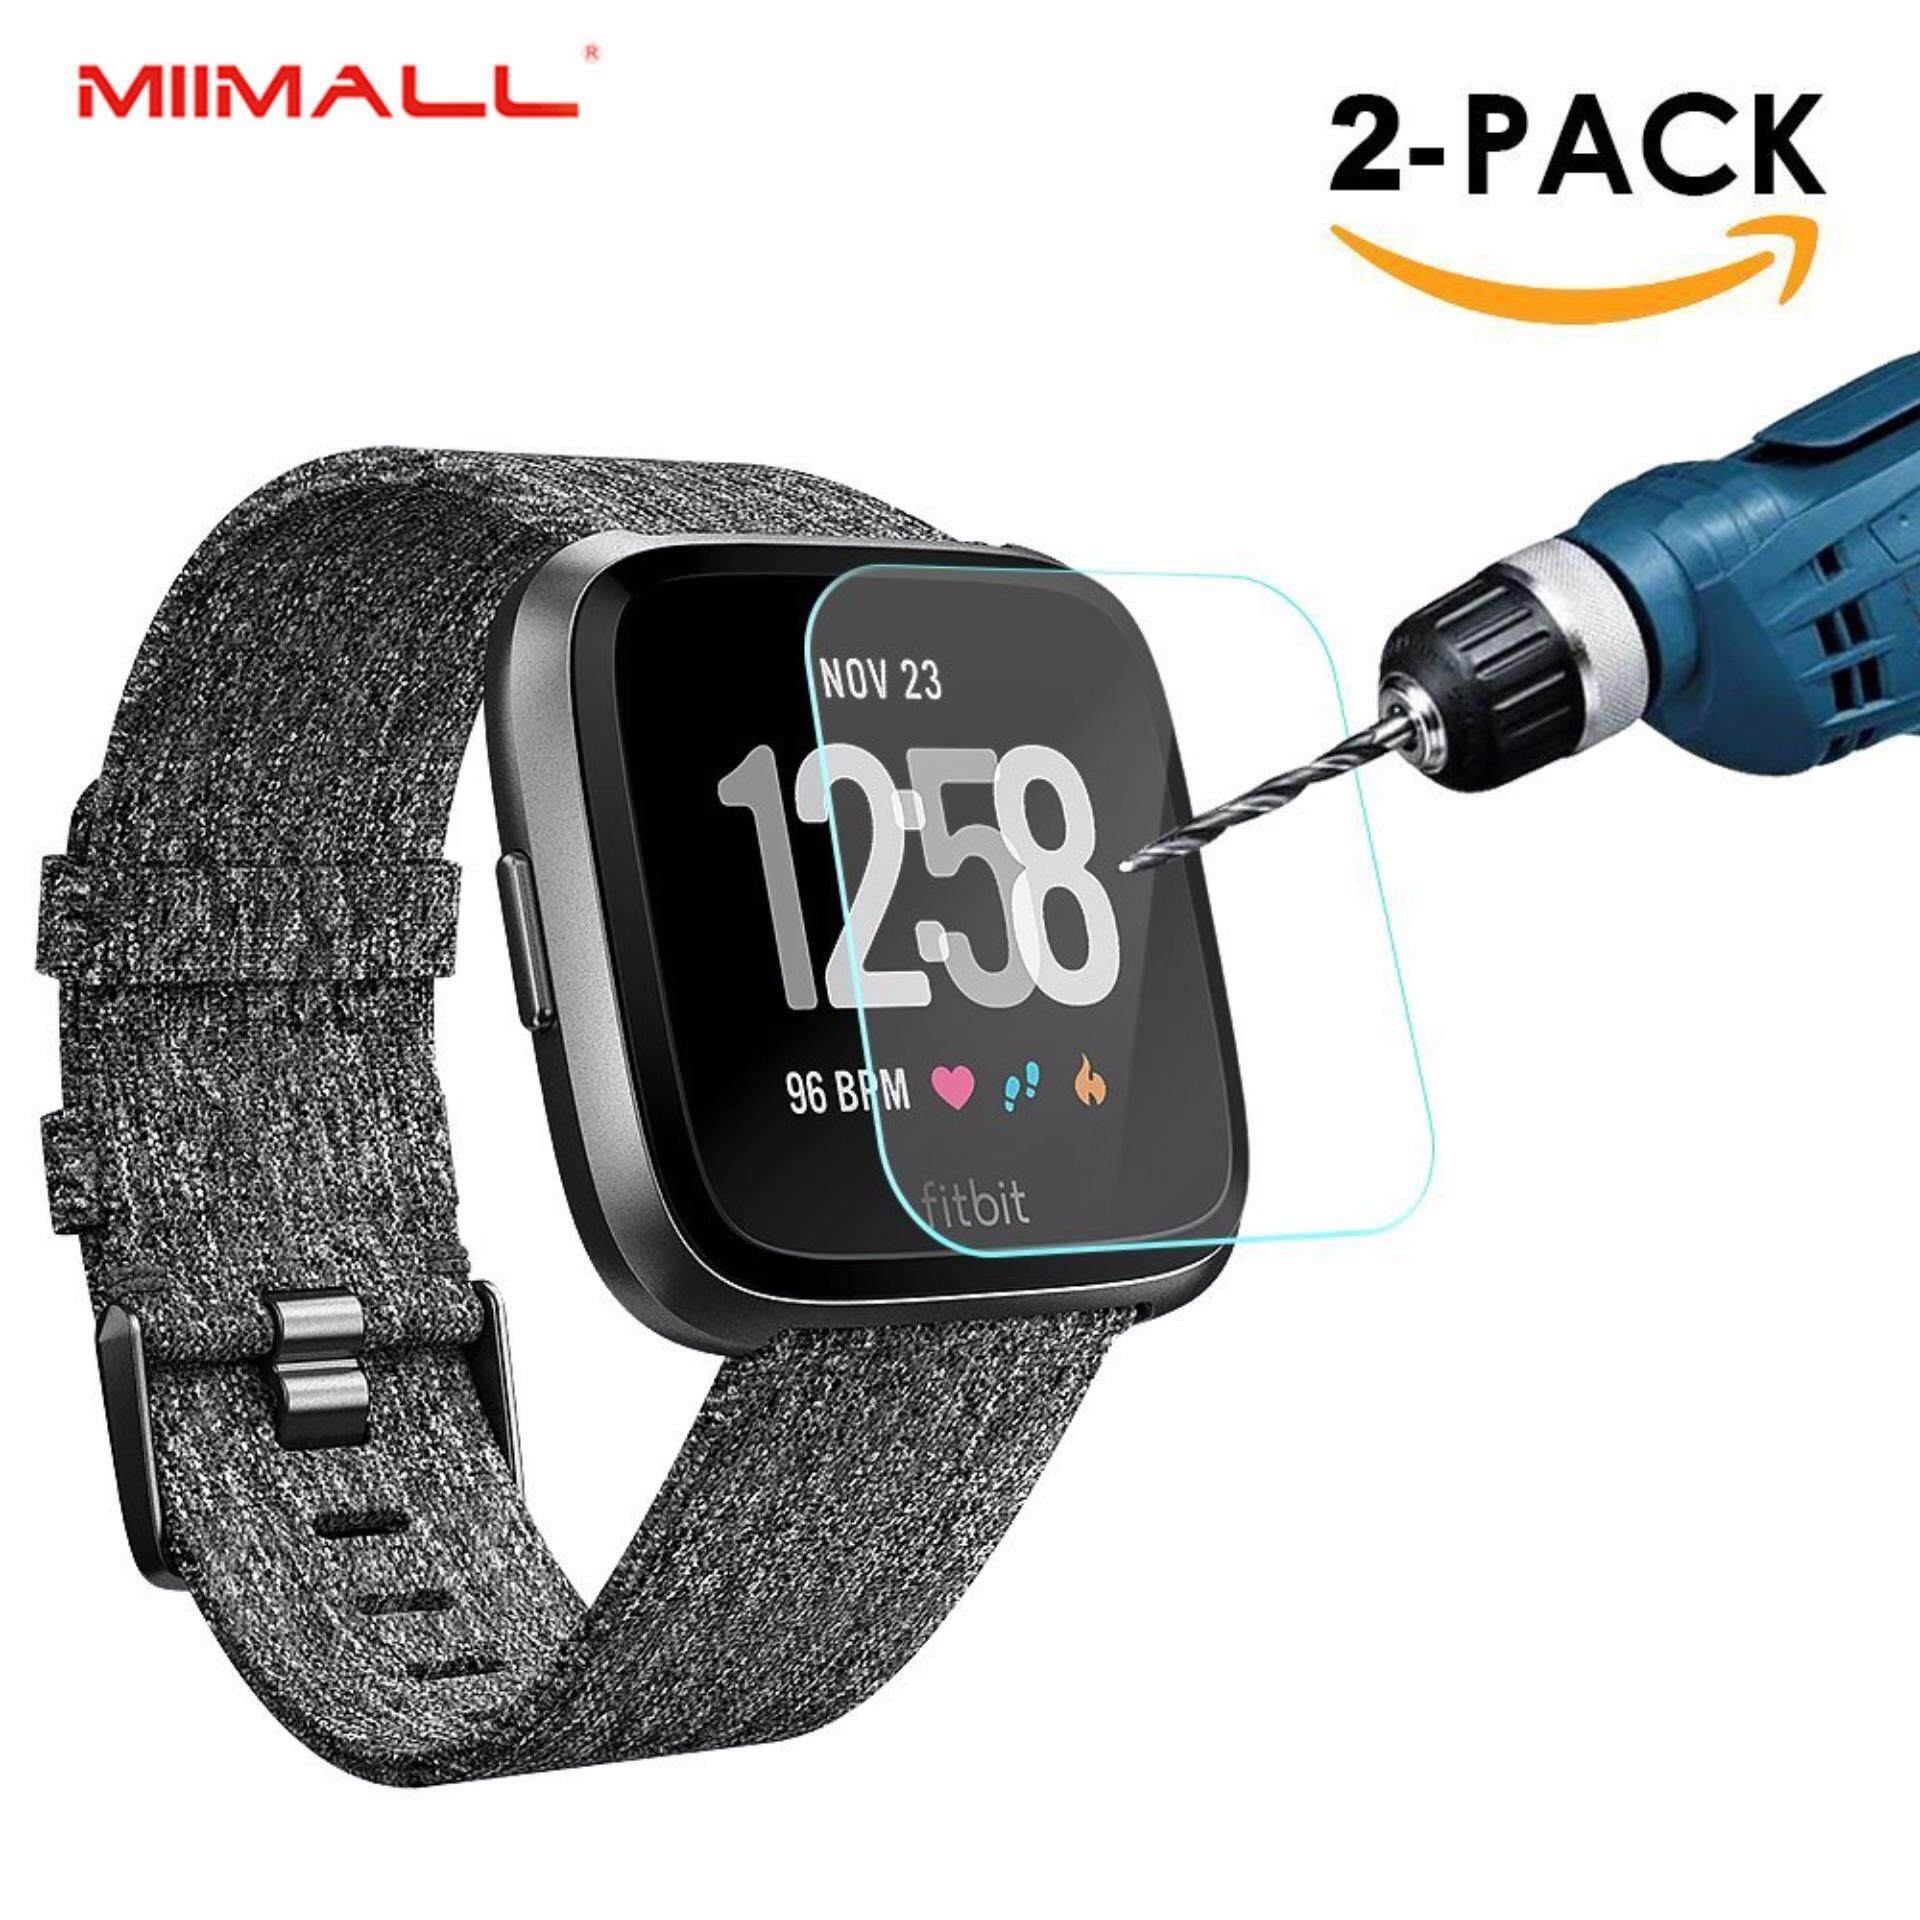 Buy 2 Pack Miimall Fitbit Versa Screen Protector Premium Hd Clear 9H Hardness Tempered Glass Screen Protector Film For Fitbit Versa Smart Watch Crystal Clear Miimall